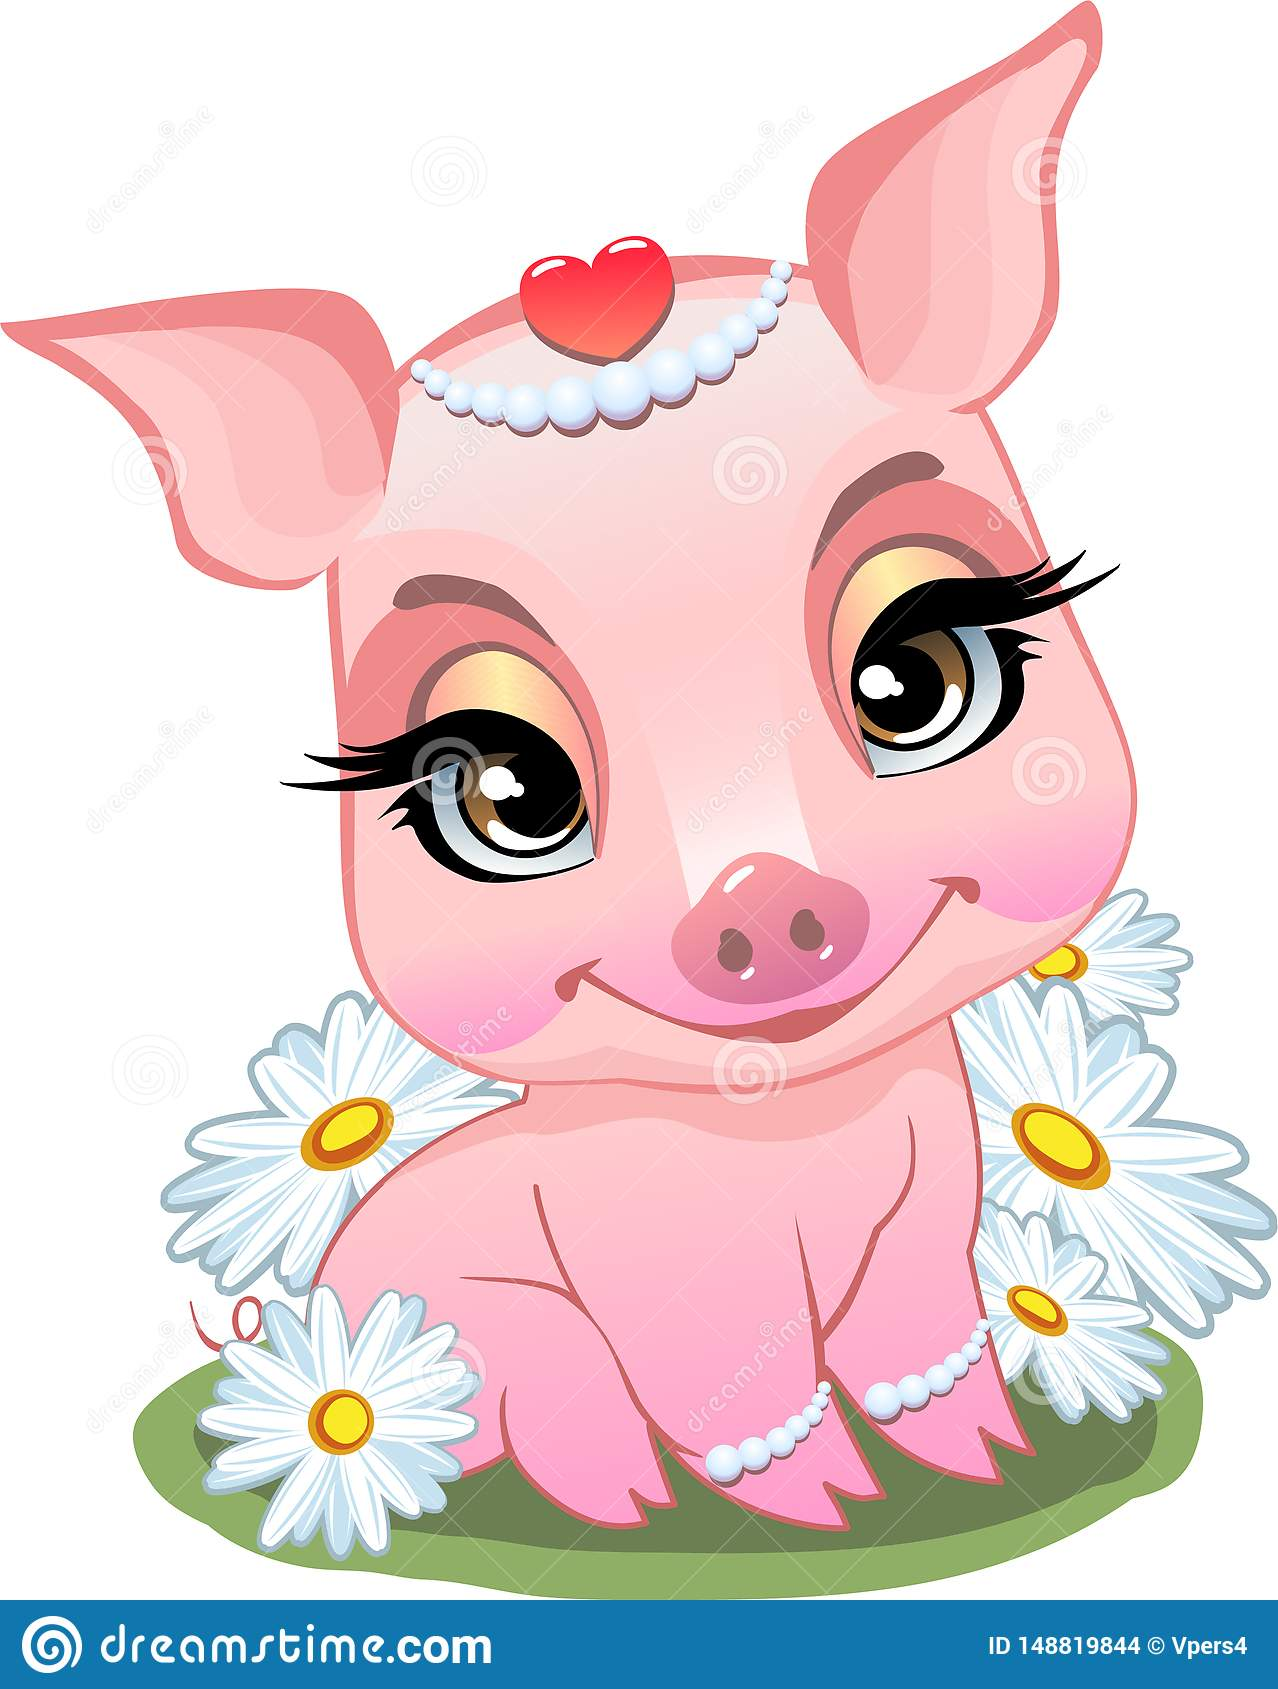 Little pig sitting in daisies.